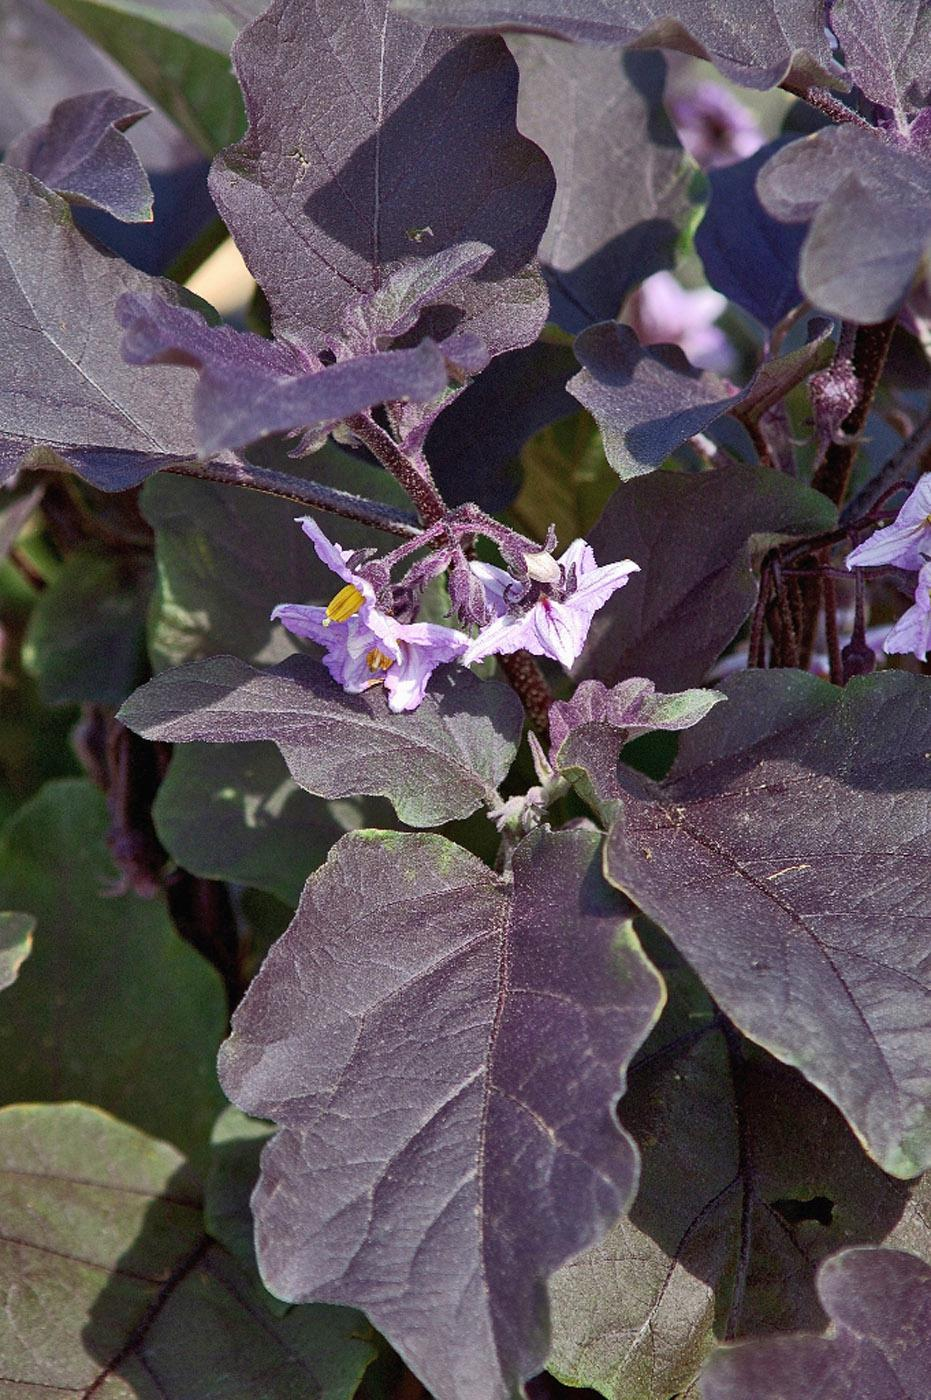 Slim Jim eggplant offers exceptional dark purple foliage and iridescent lavender-violet blossoms and can be grown as an ornamental. (Photo by Norman Winter)